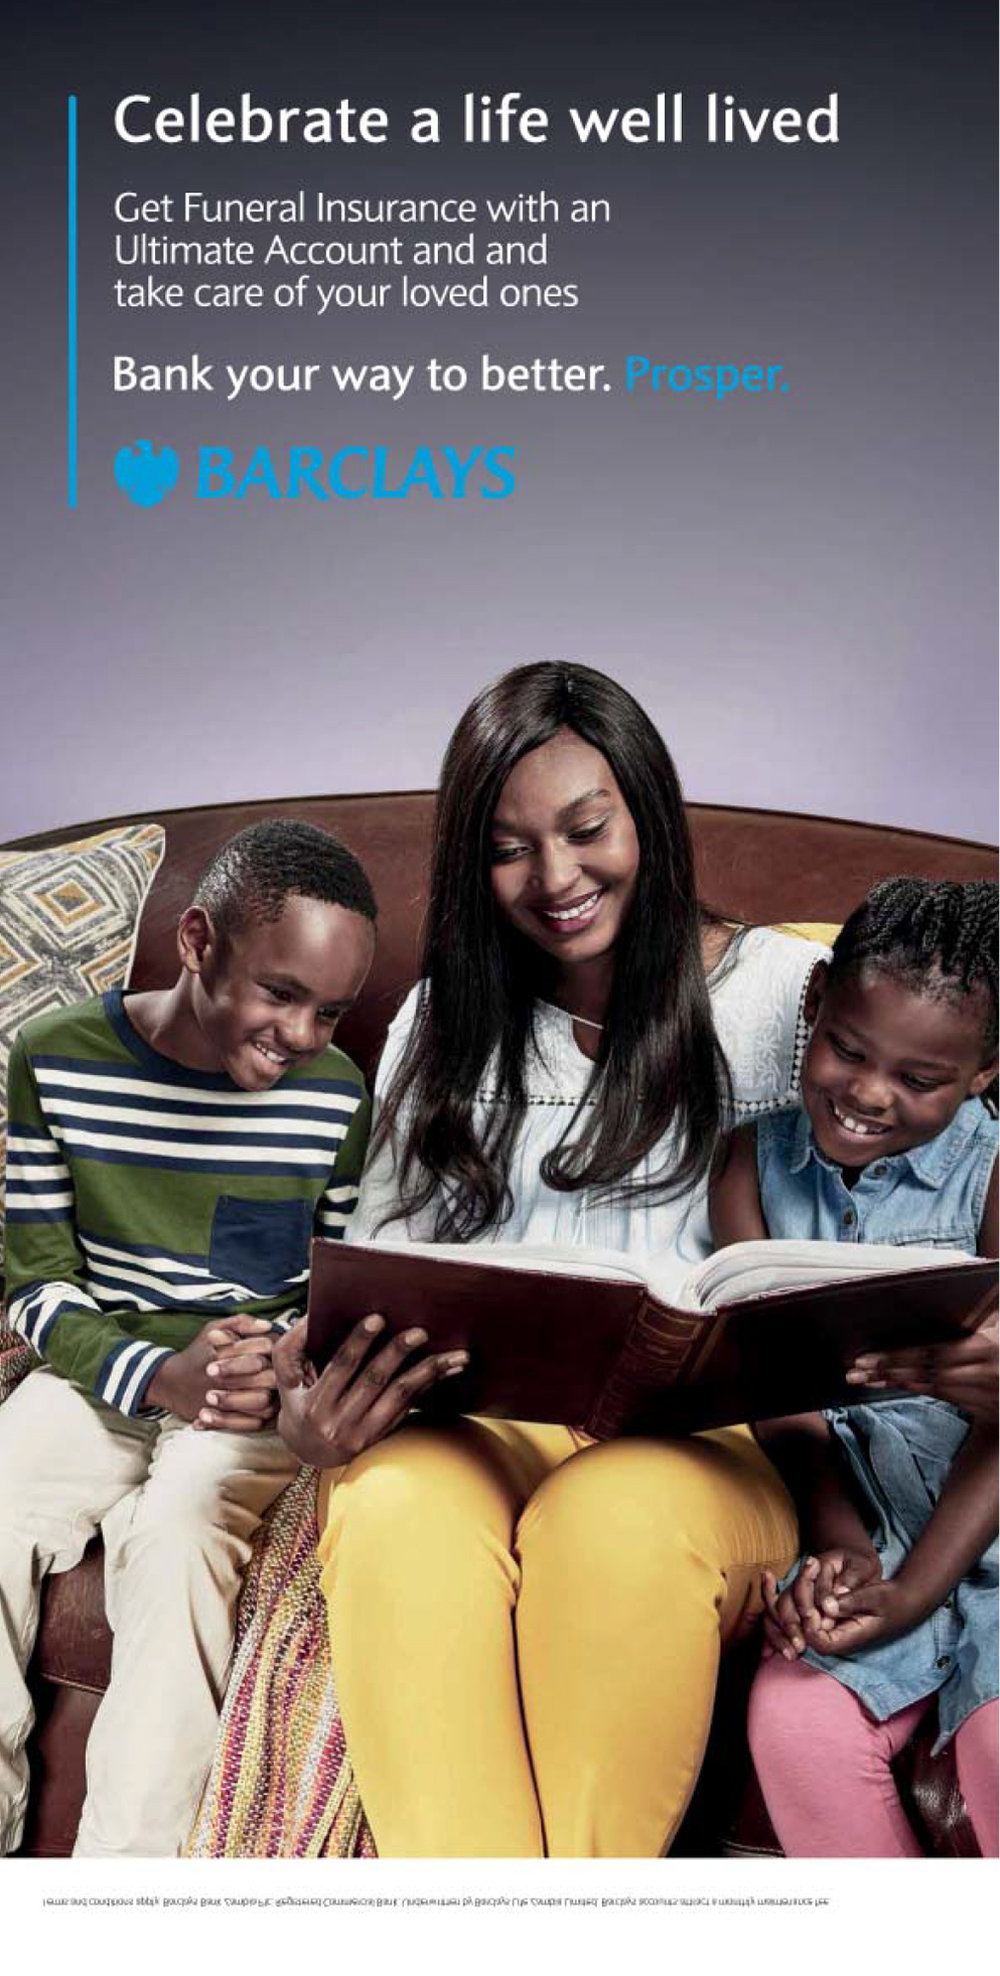 Barclays Personal Banking Campaign Toolkit 26 APRIL-72.jpg